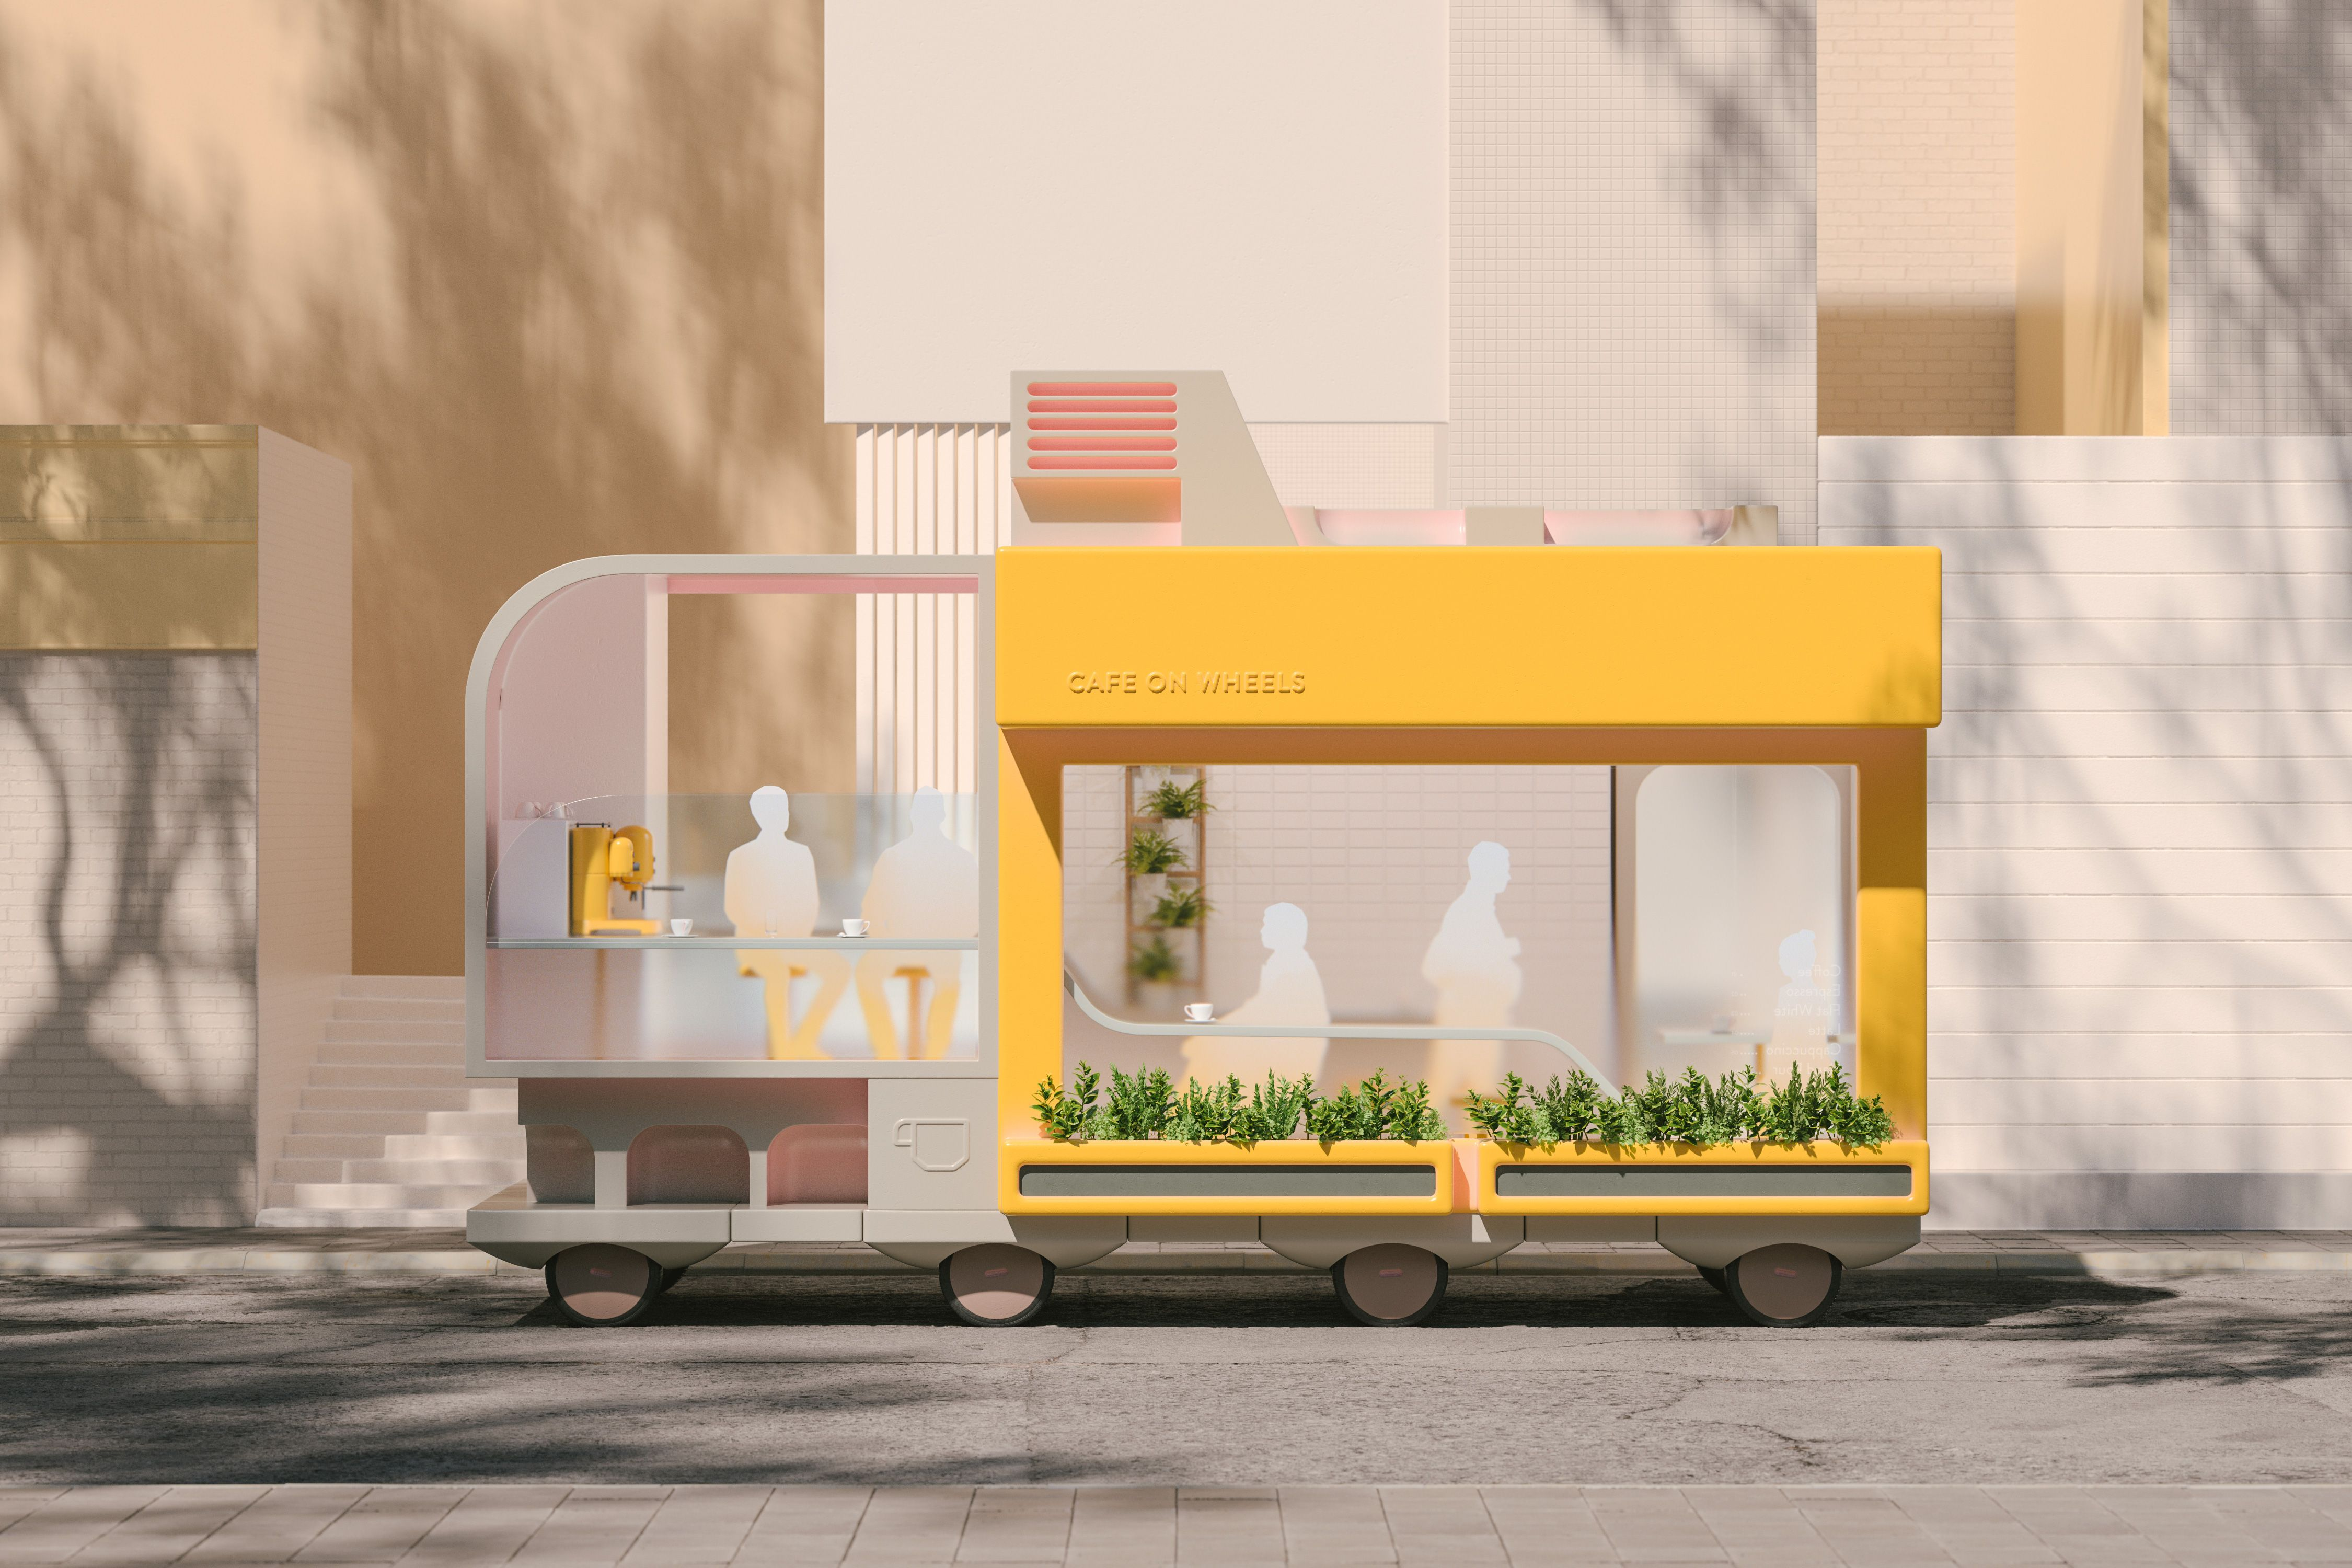 Ikea s space proposes new designs for self driving cars with